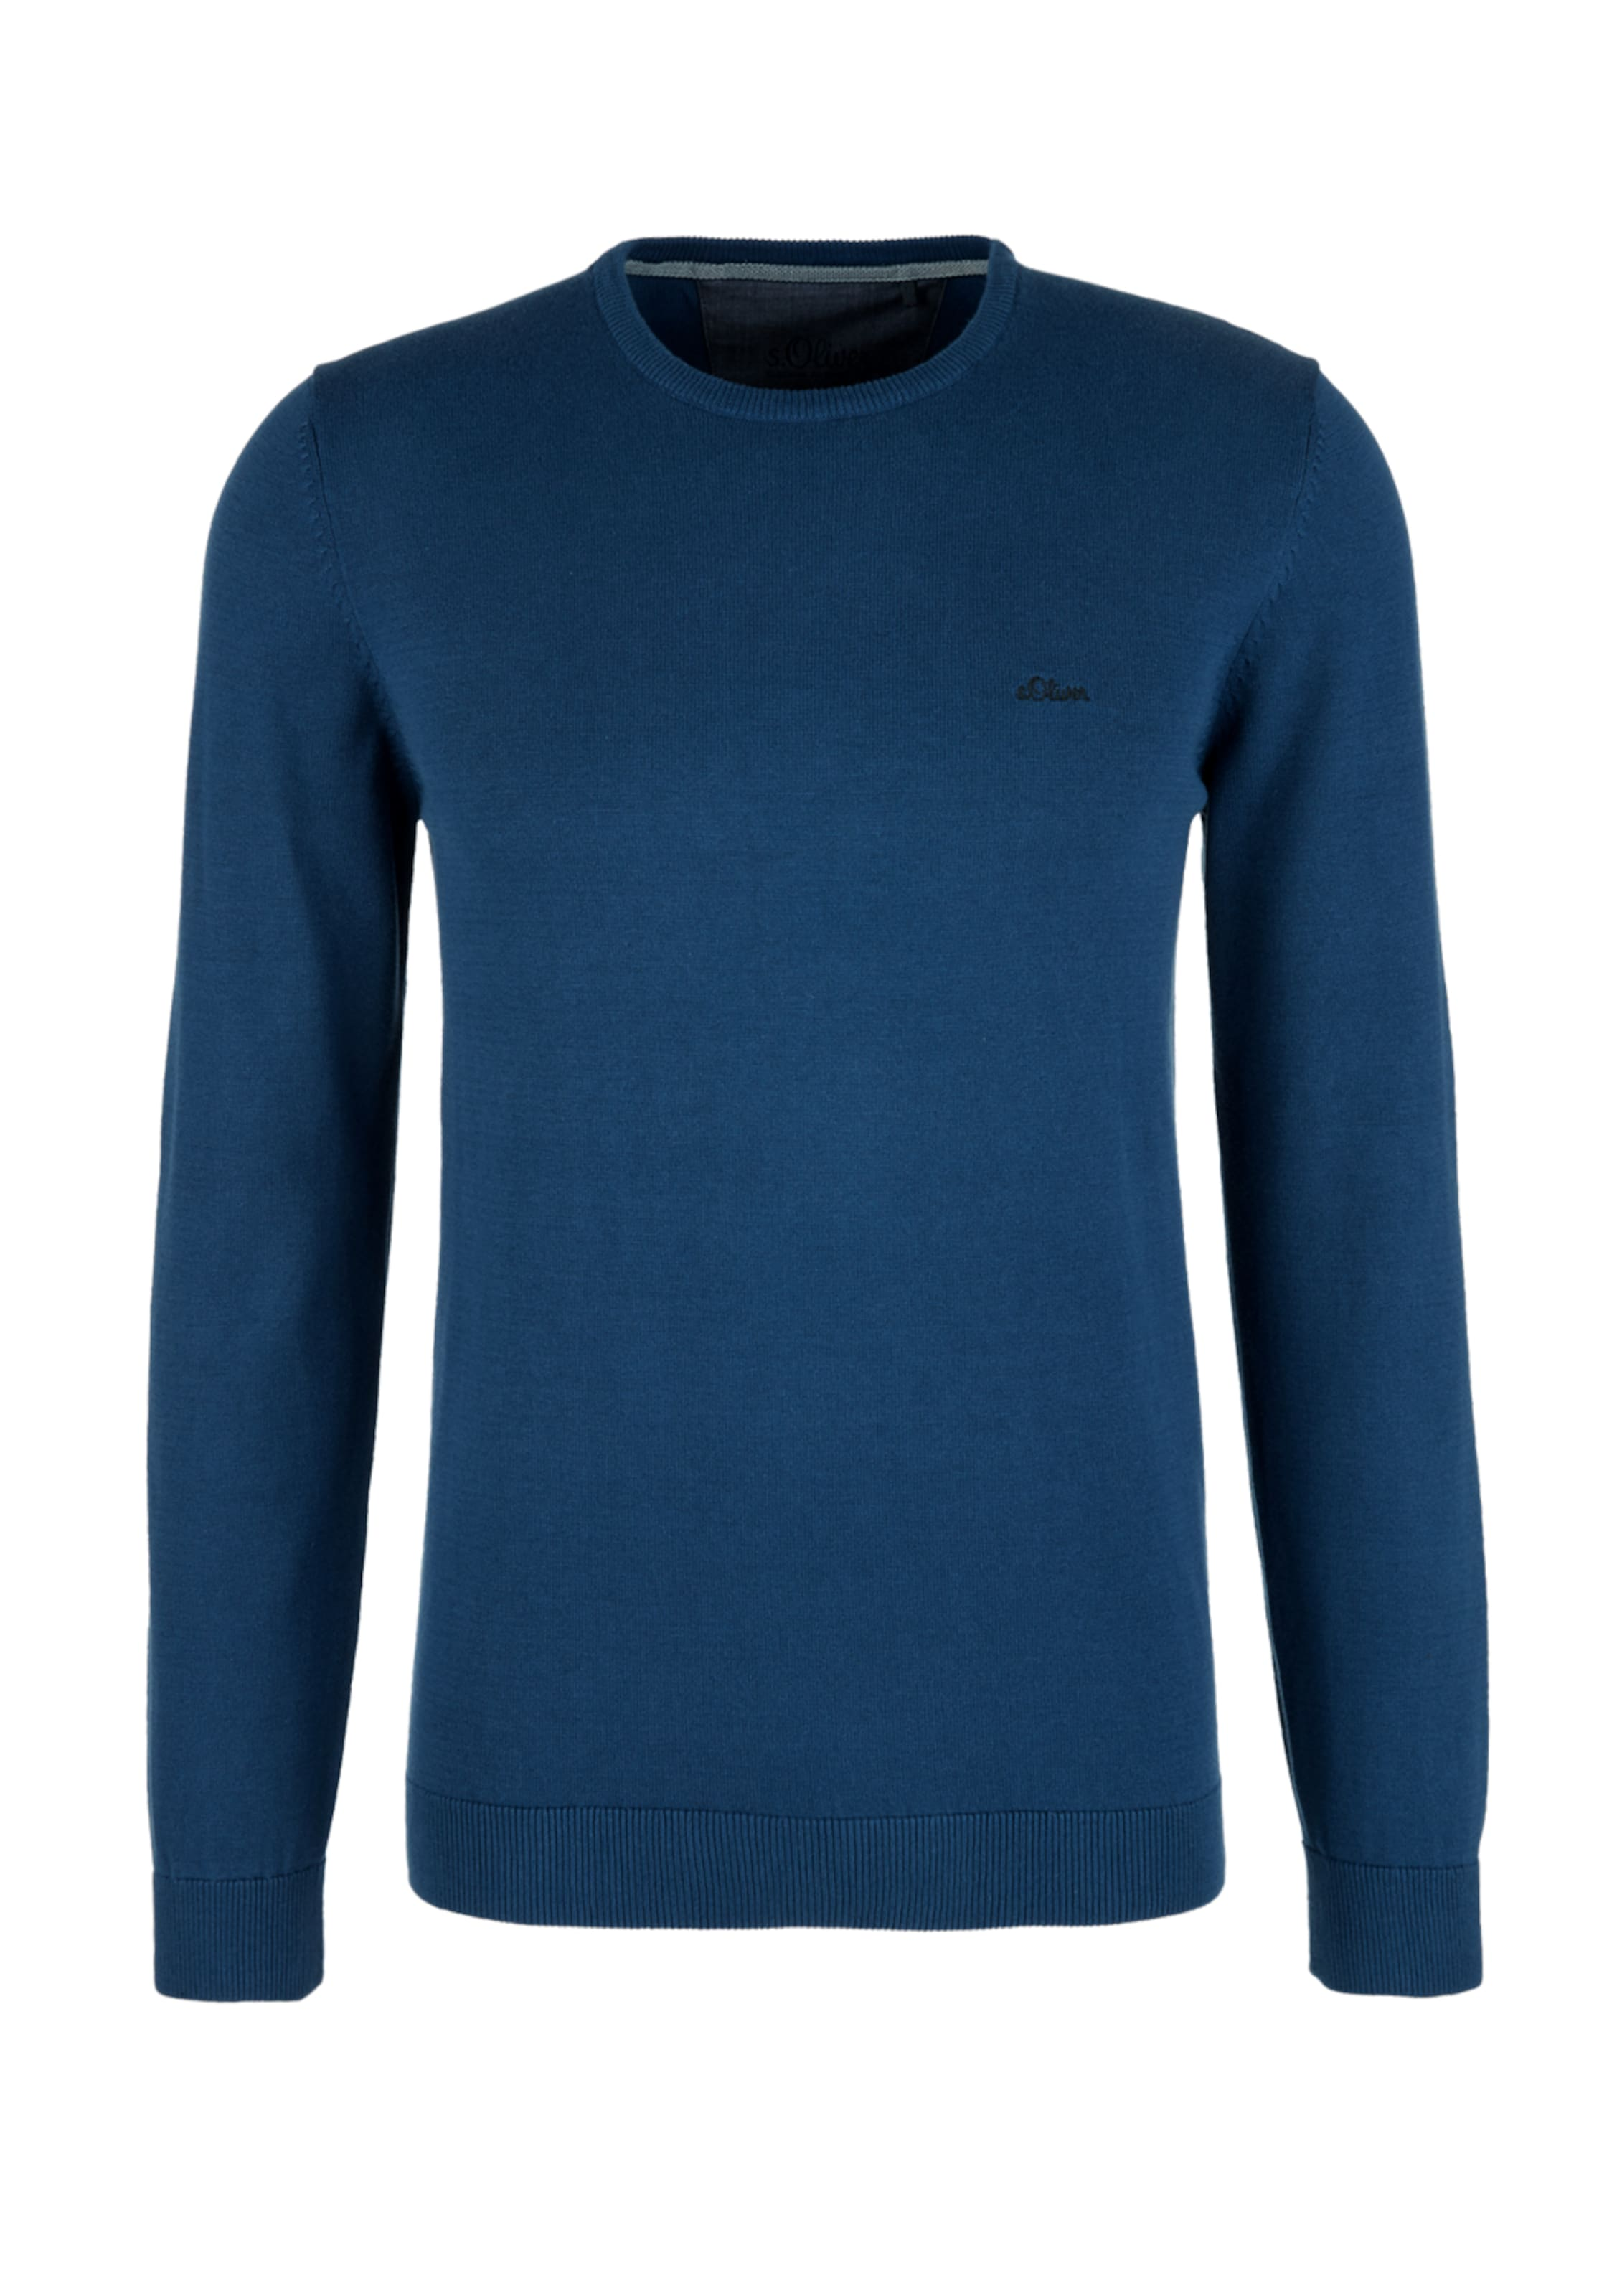 oliver Red Pullover Mit Neck S Label Blau Crew In 1JFcKl